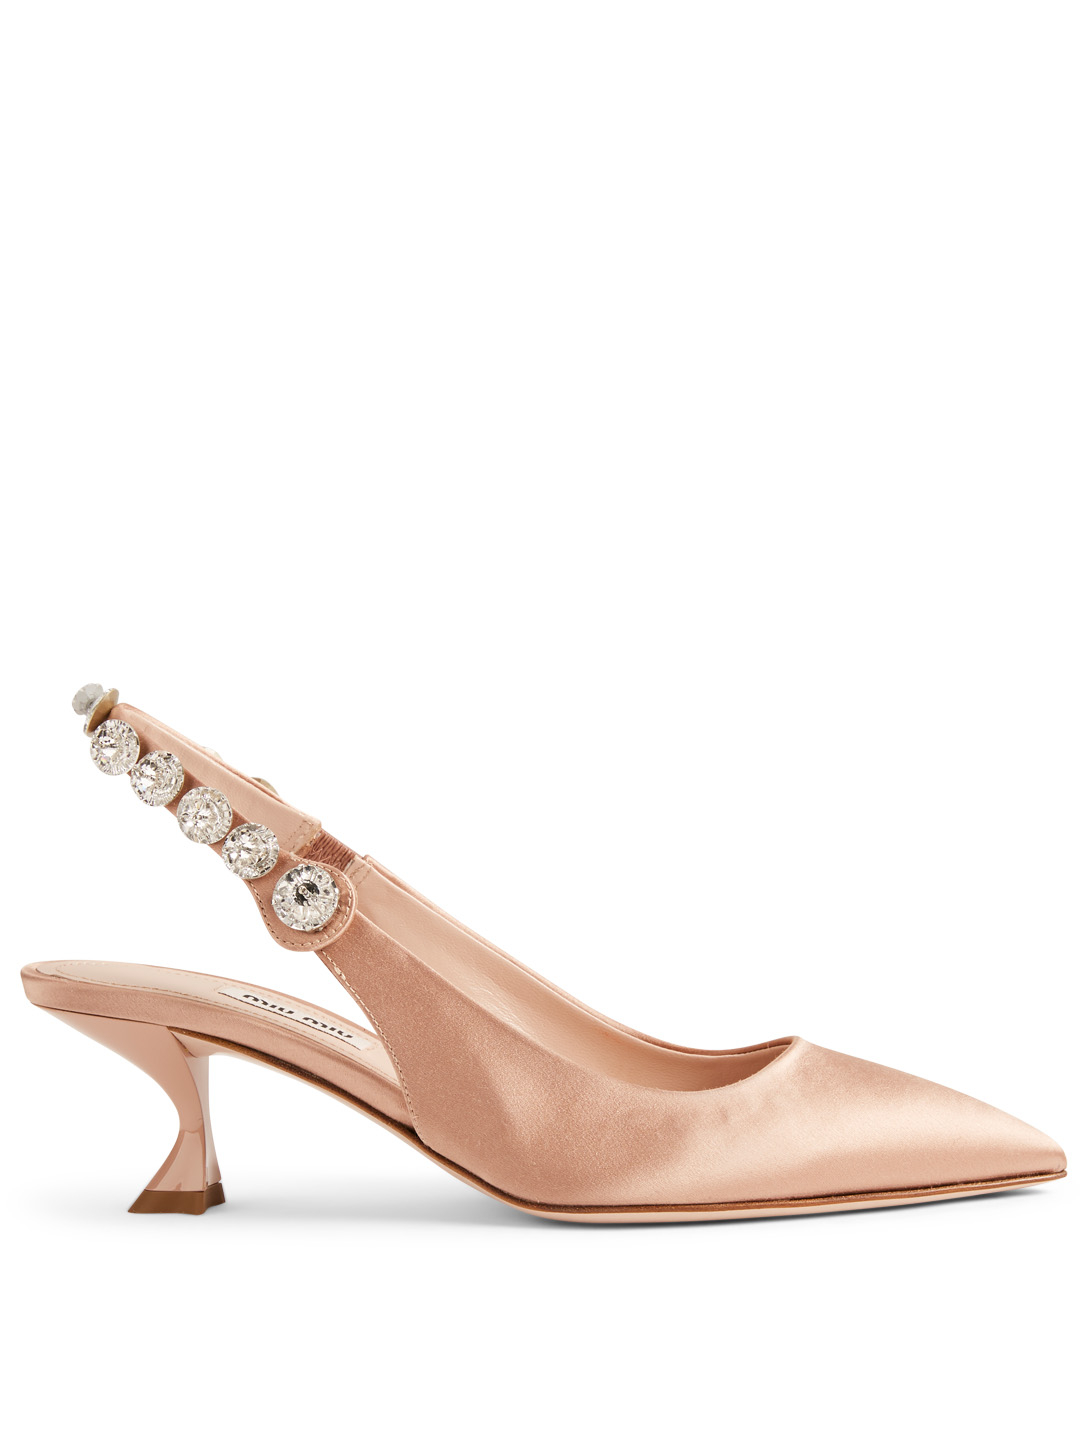 847e9aed71 MIU MIU Satin Crystal Slingback Pumps Women's Neutral ...